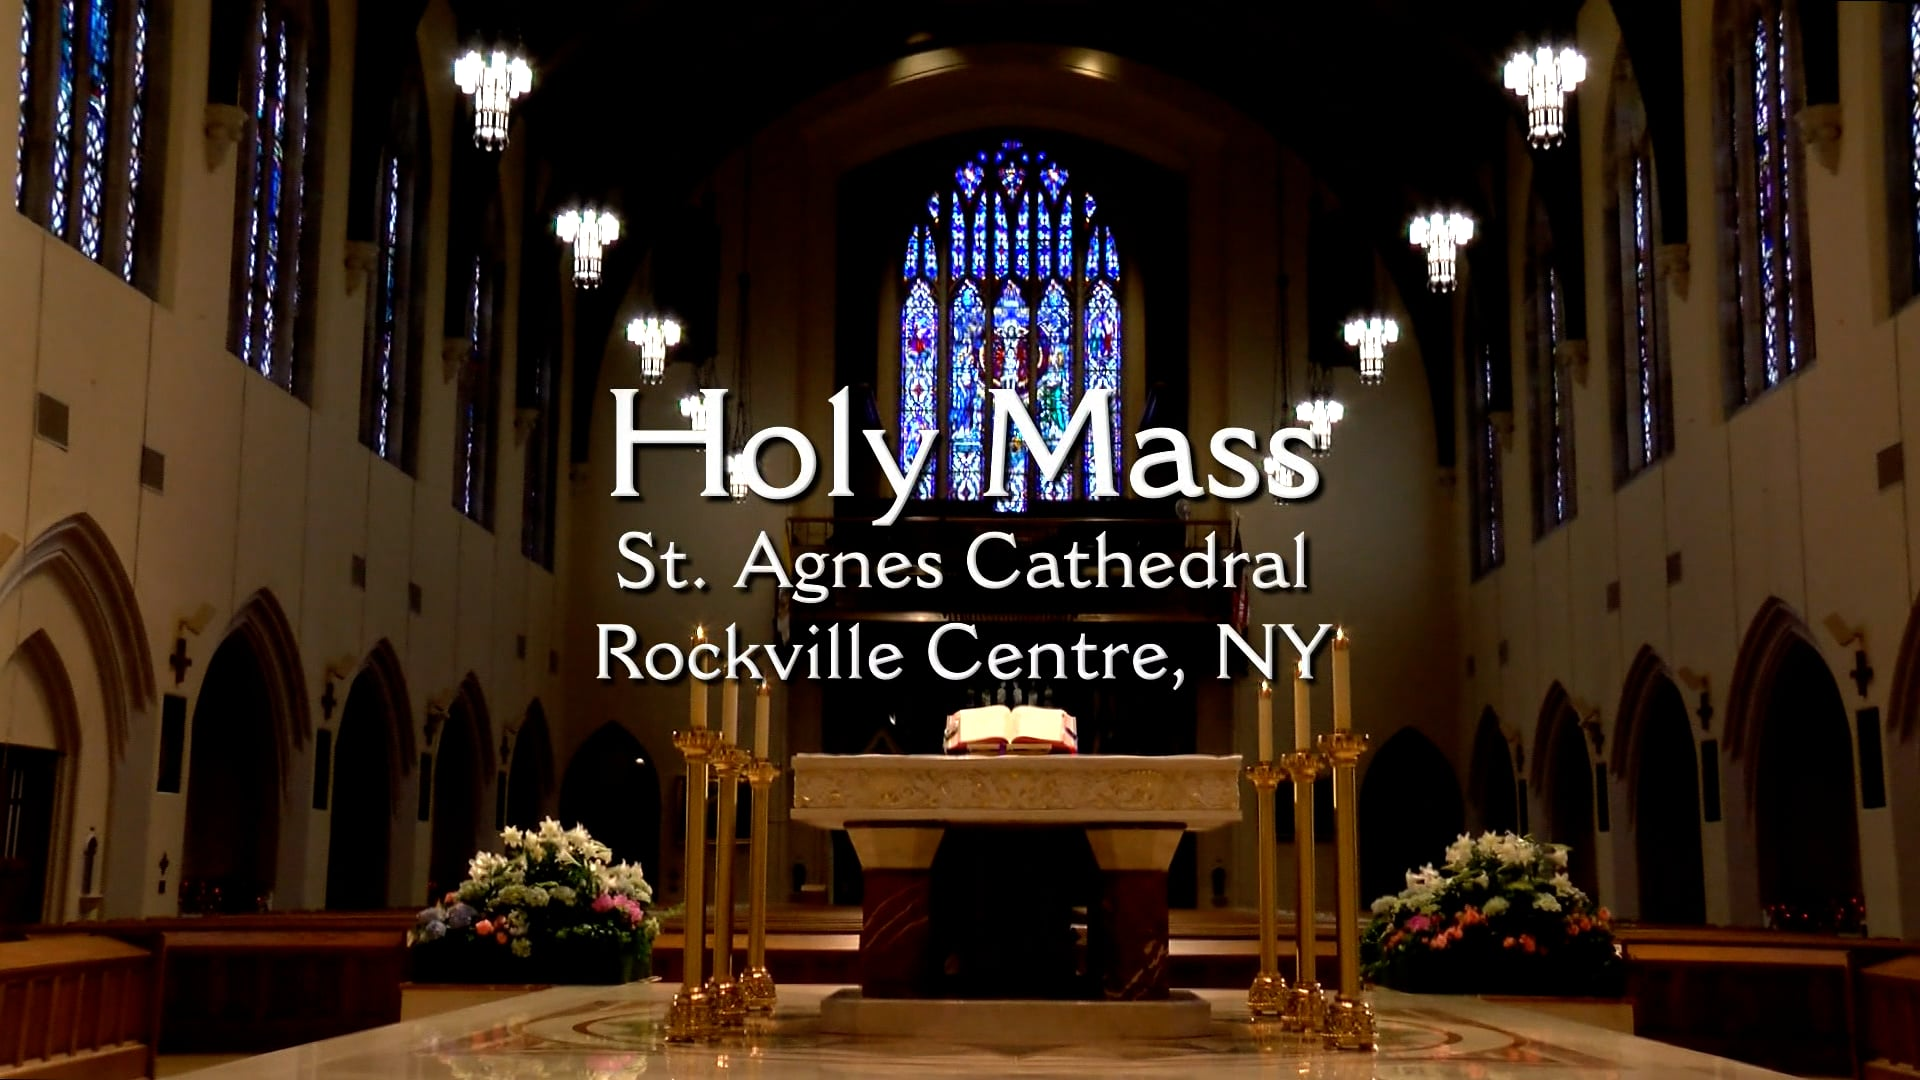 Mass from St. Agnes Cathedral - October 19, 2021